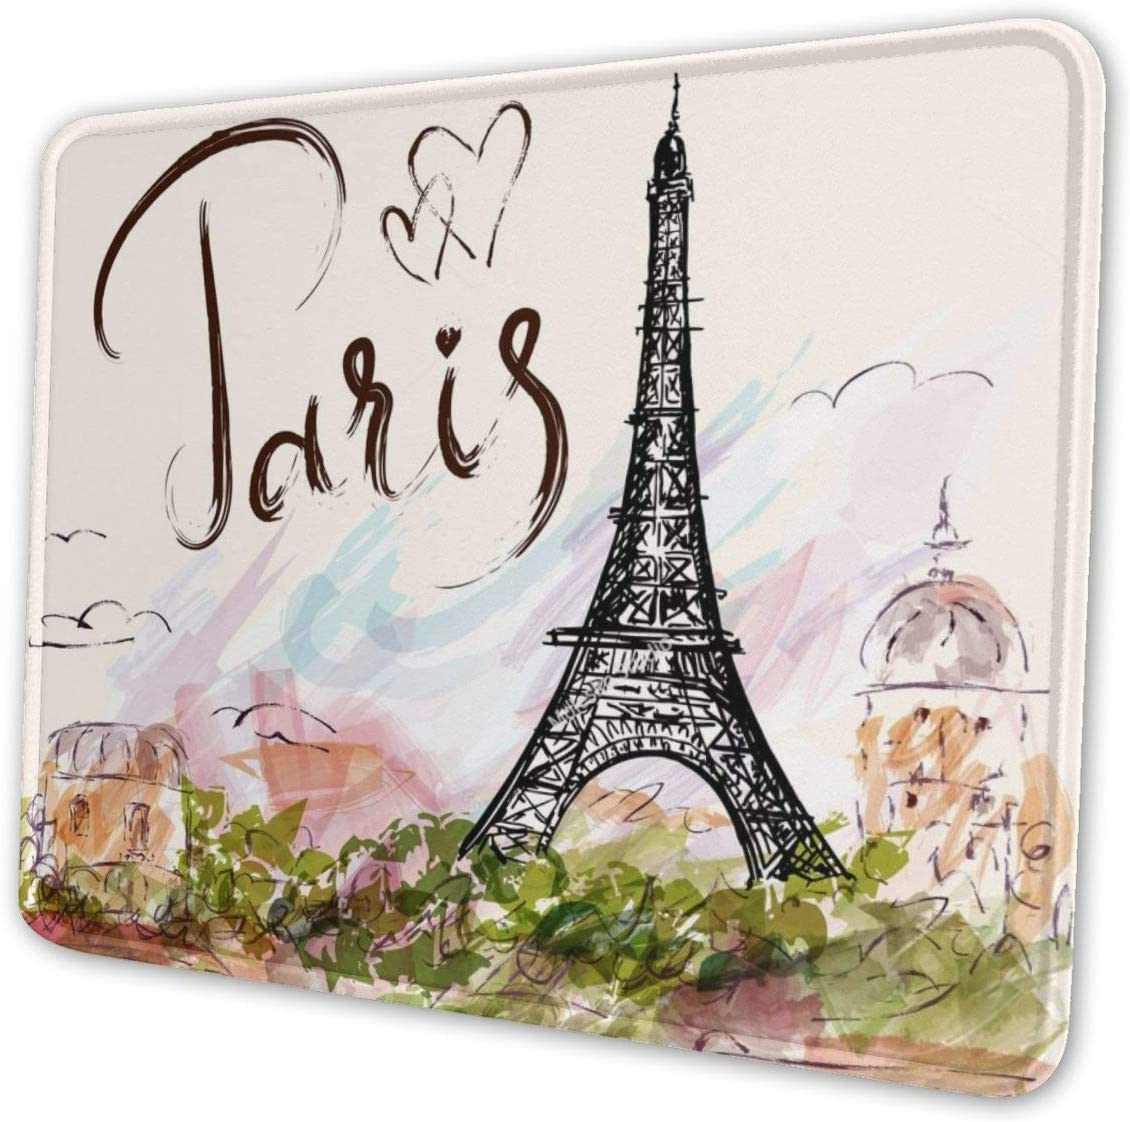 The Famous Paris Eiffel Tower Mouse Pad with Stitched Edge, Premium-Textured Mouse Mat, Non-Slip Rubber Base Mousepad for Laptop, Computer & PC, 10.3x8.3x0.03 inch